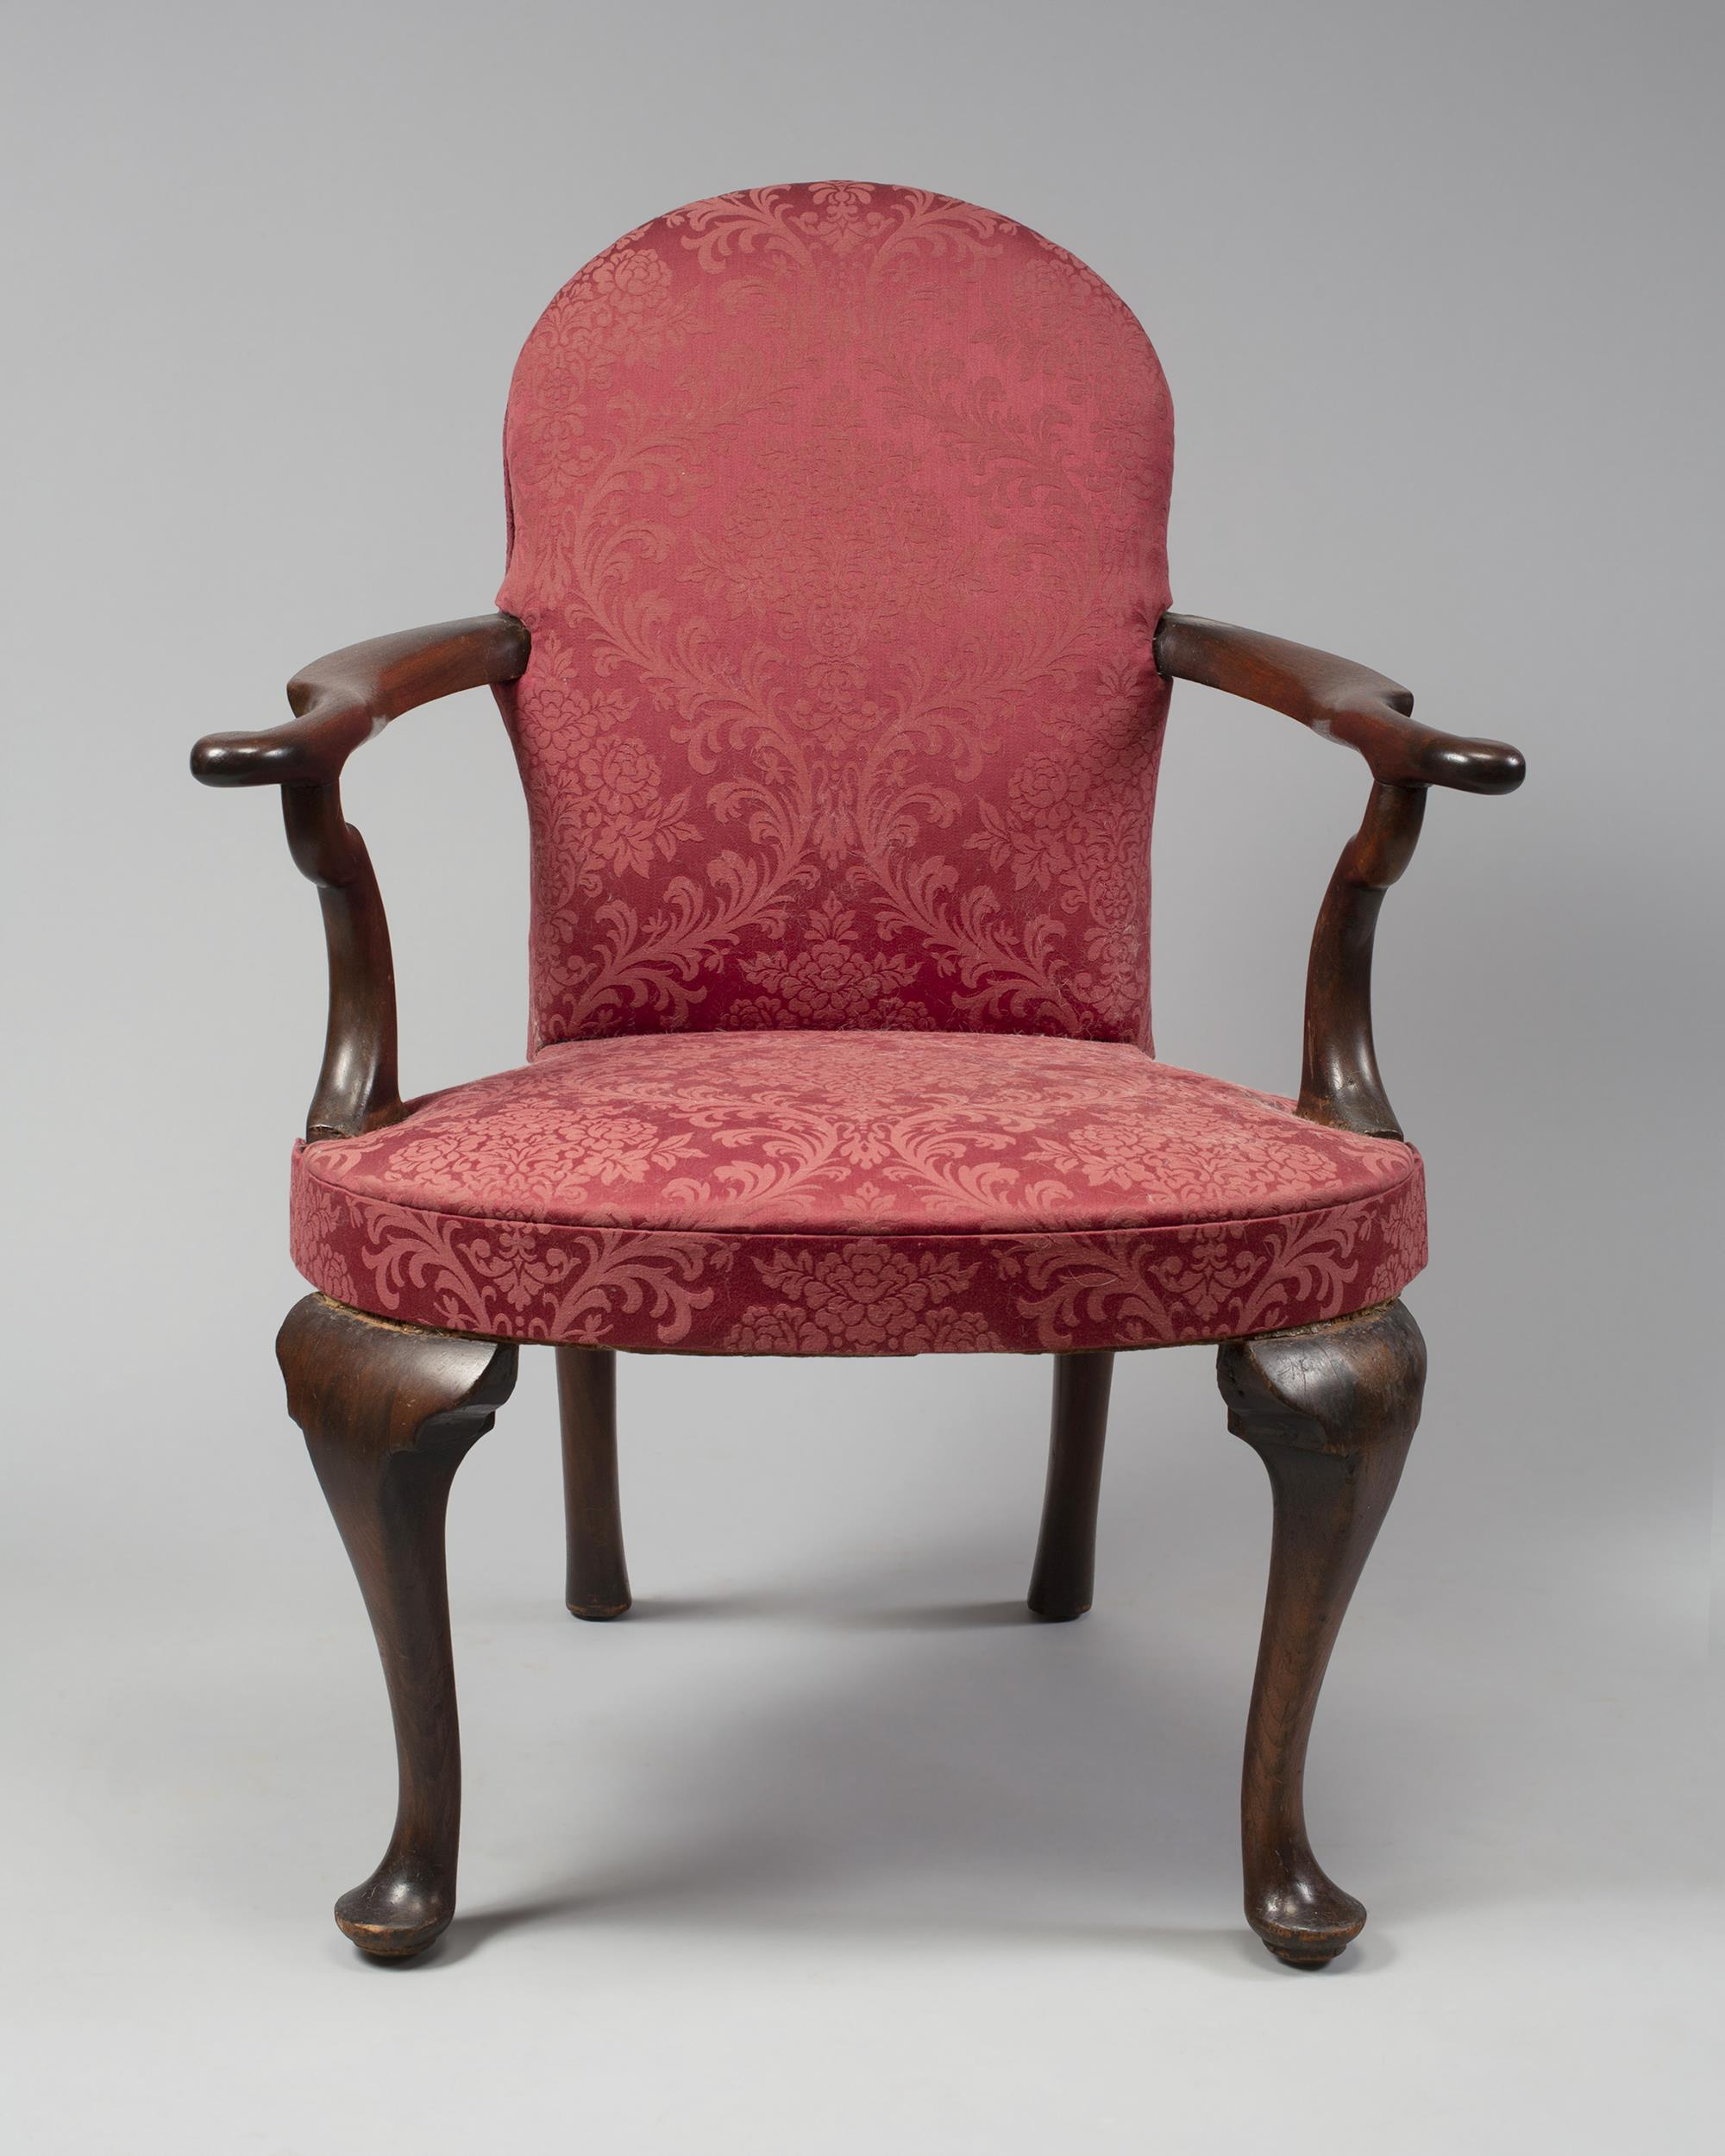 Rare and Important Queen Anne Upholstered Open Arm Chair